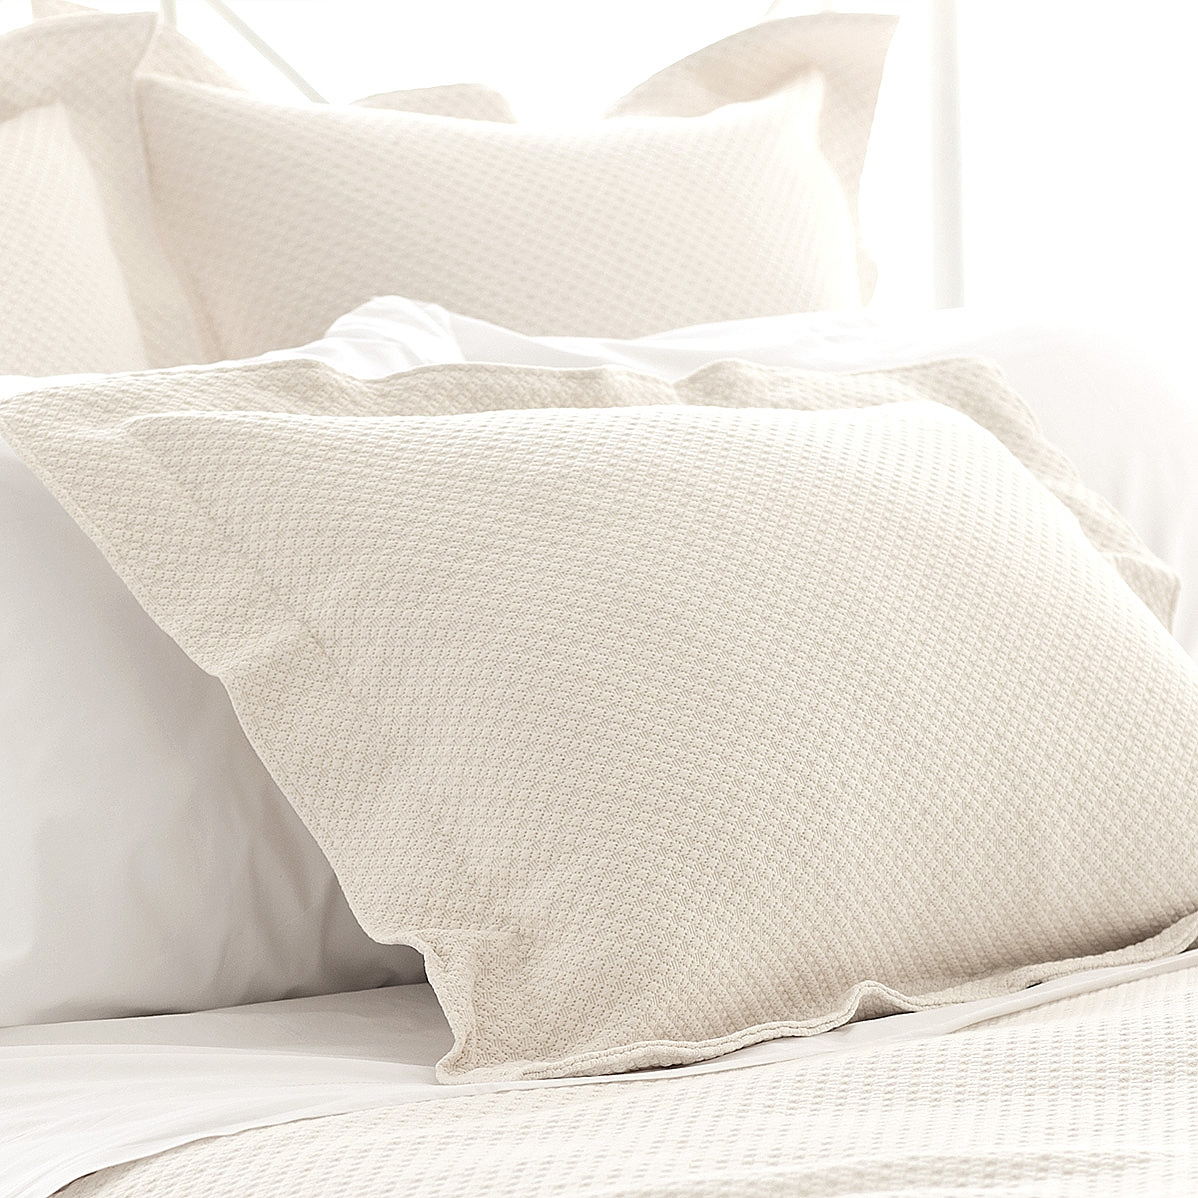 Petite Trellis Matelasse Coverlet and Sham